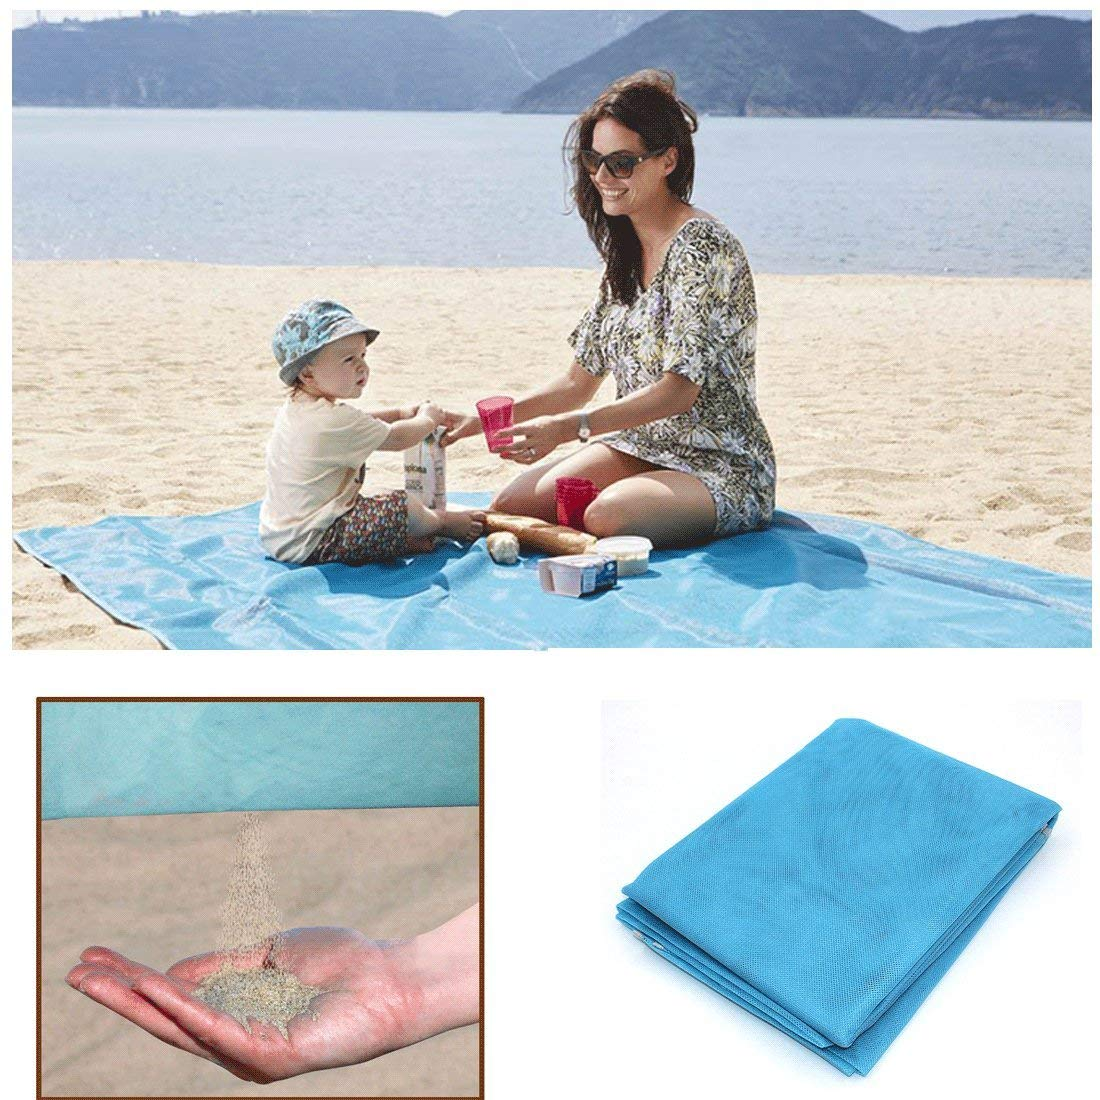 Large Sand Free Beach Mat Outdoor Travel Seaside picnic Sand Free Mat, Sand Proof Mat Easy Clean and Dust Prevention Oversized Beach Blanket Ripstop Polyester Mesh Travel Beach Mat 79 X 79 inch